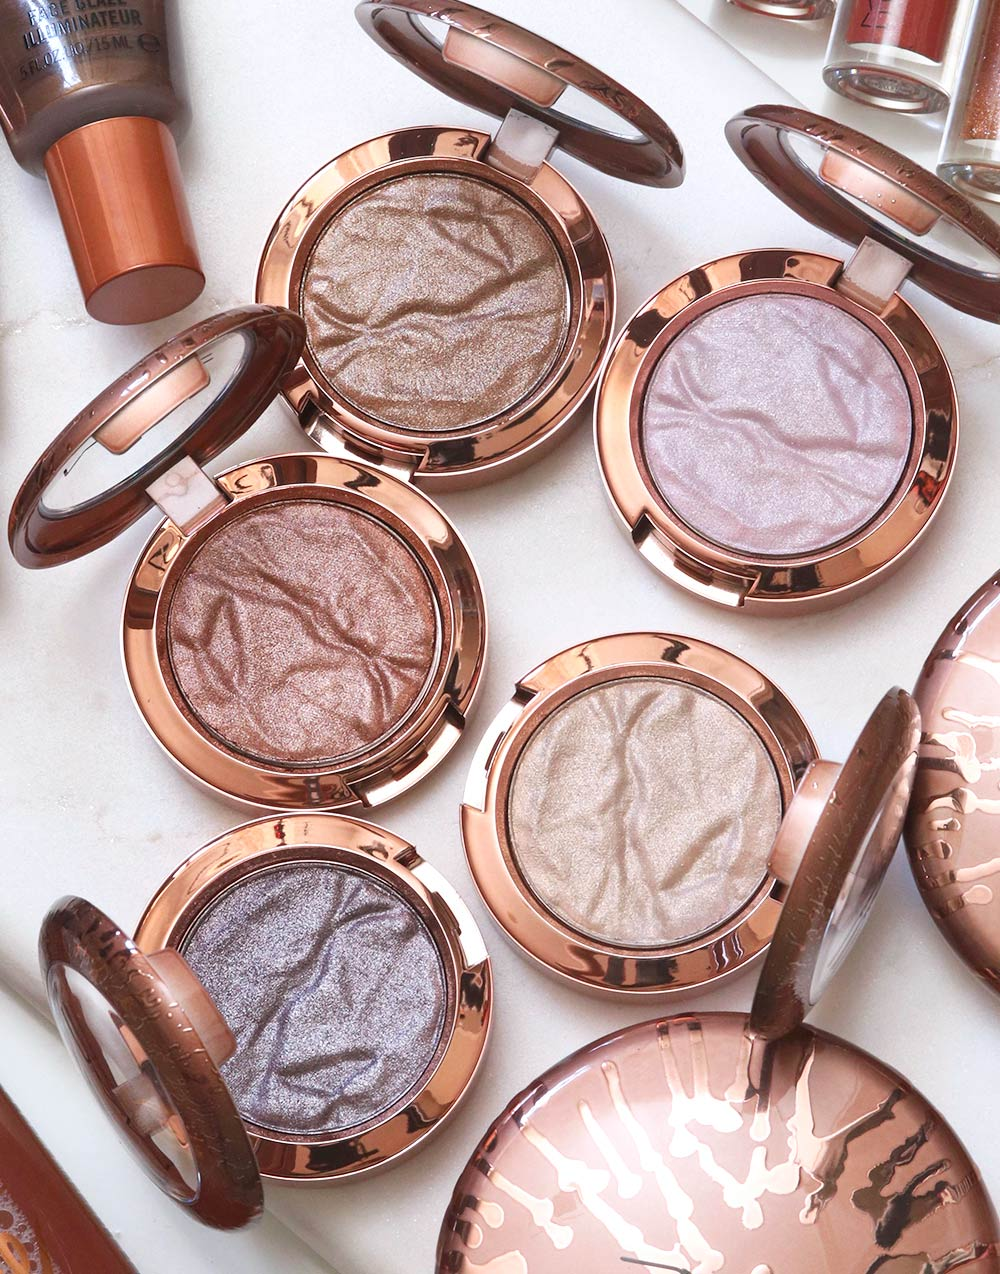 mac bronzer collection summer 2020 foiled shadow